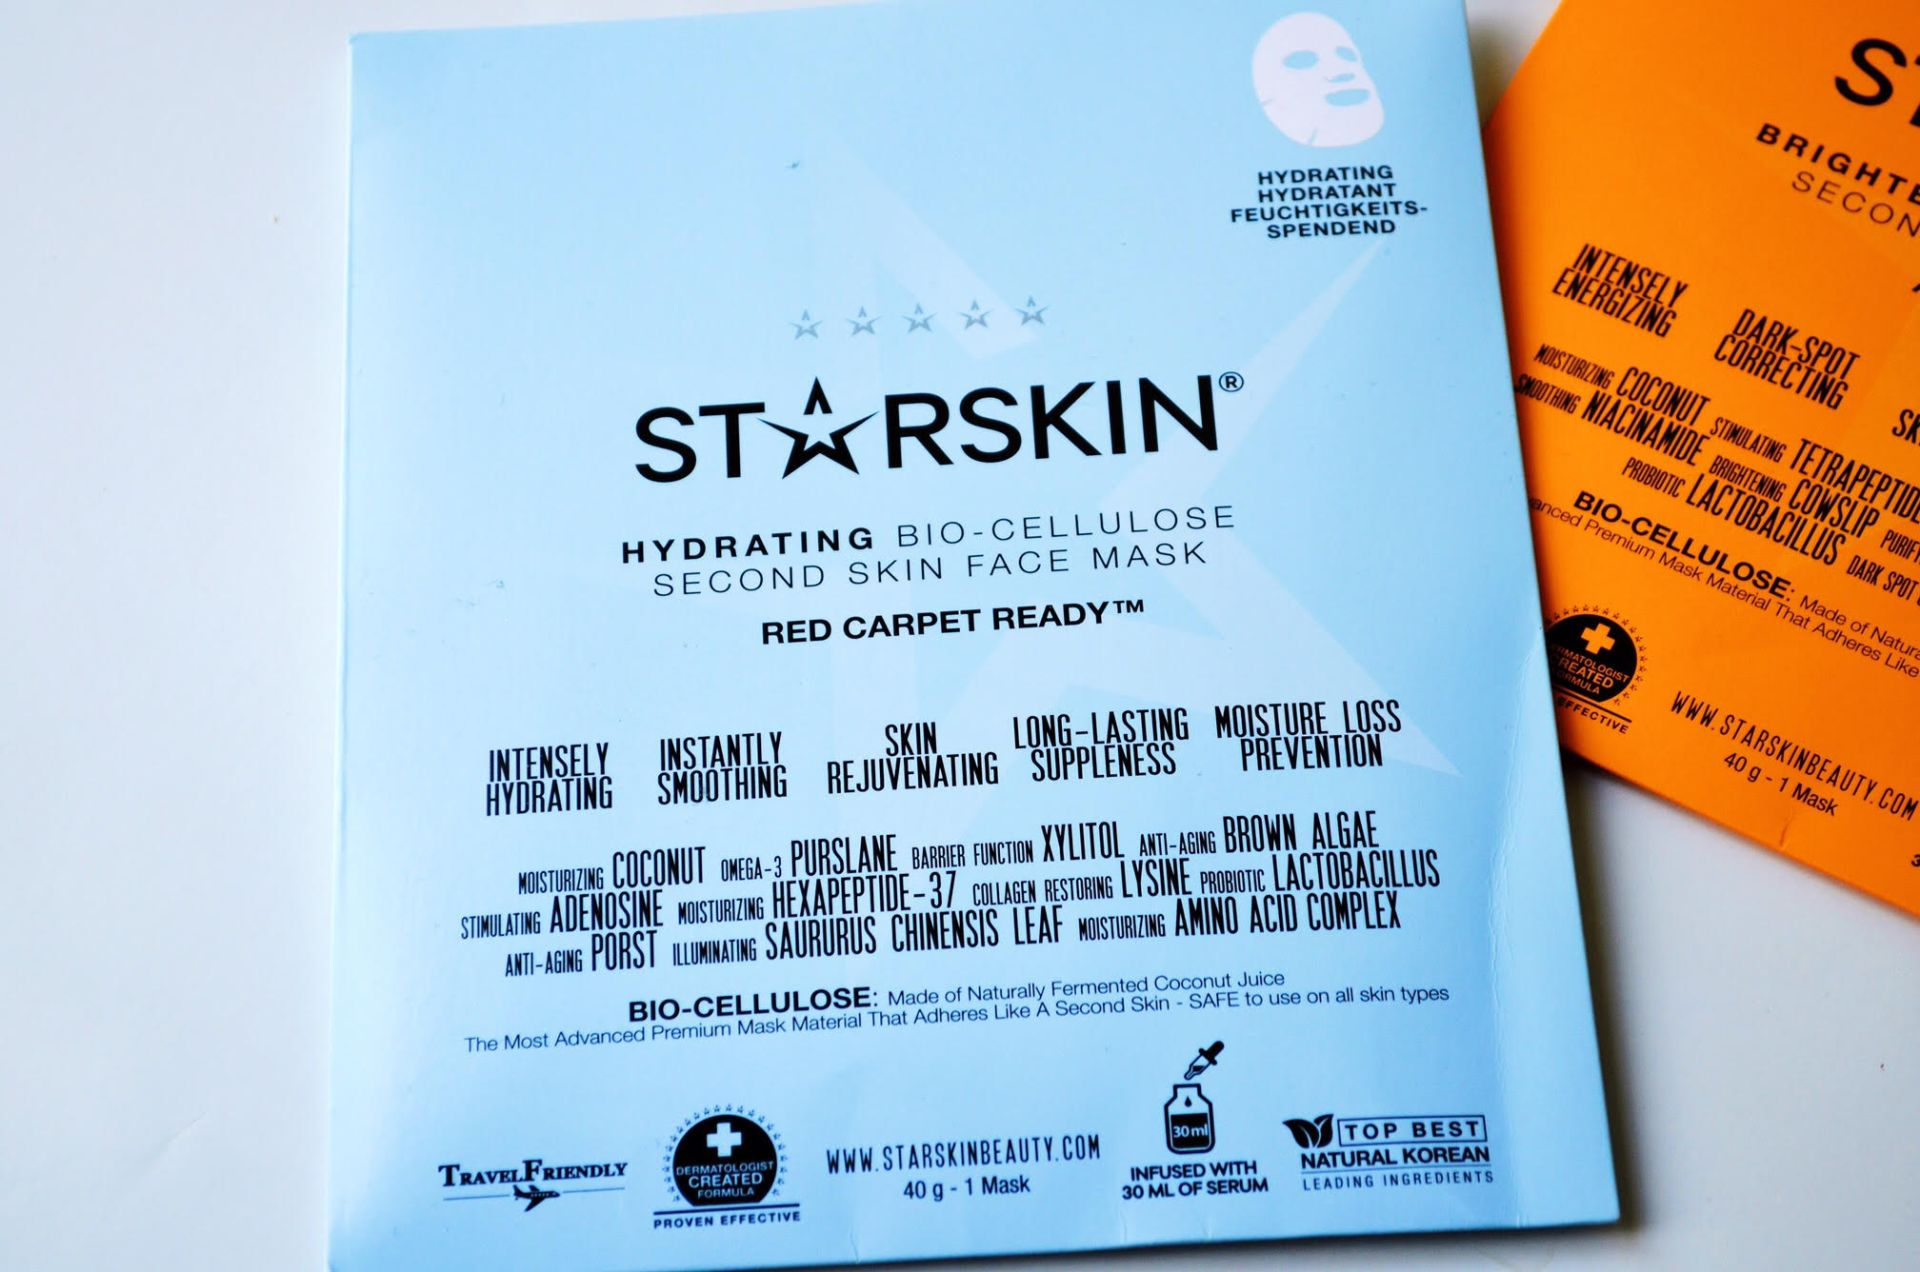 blush-london-reviews-starskin